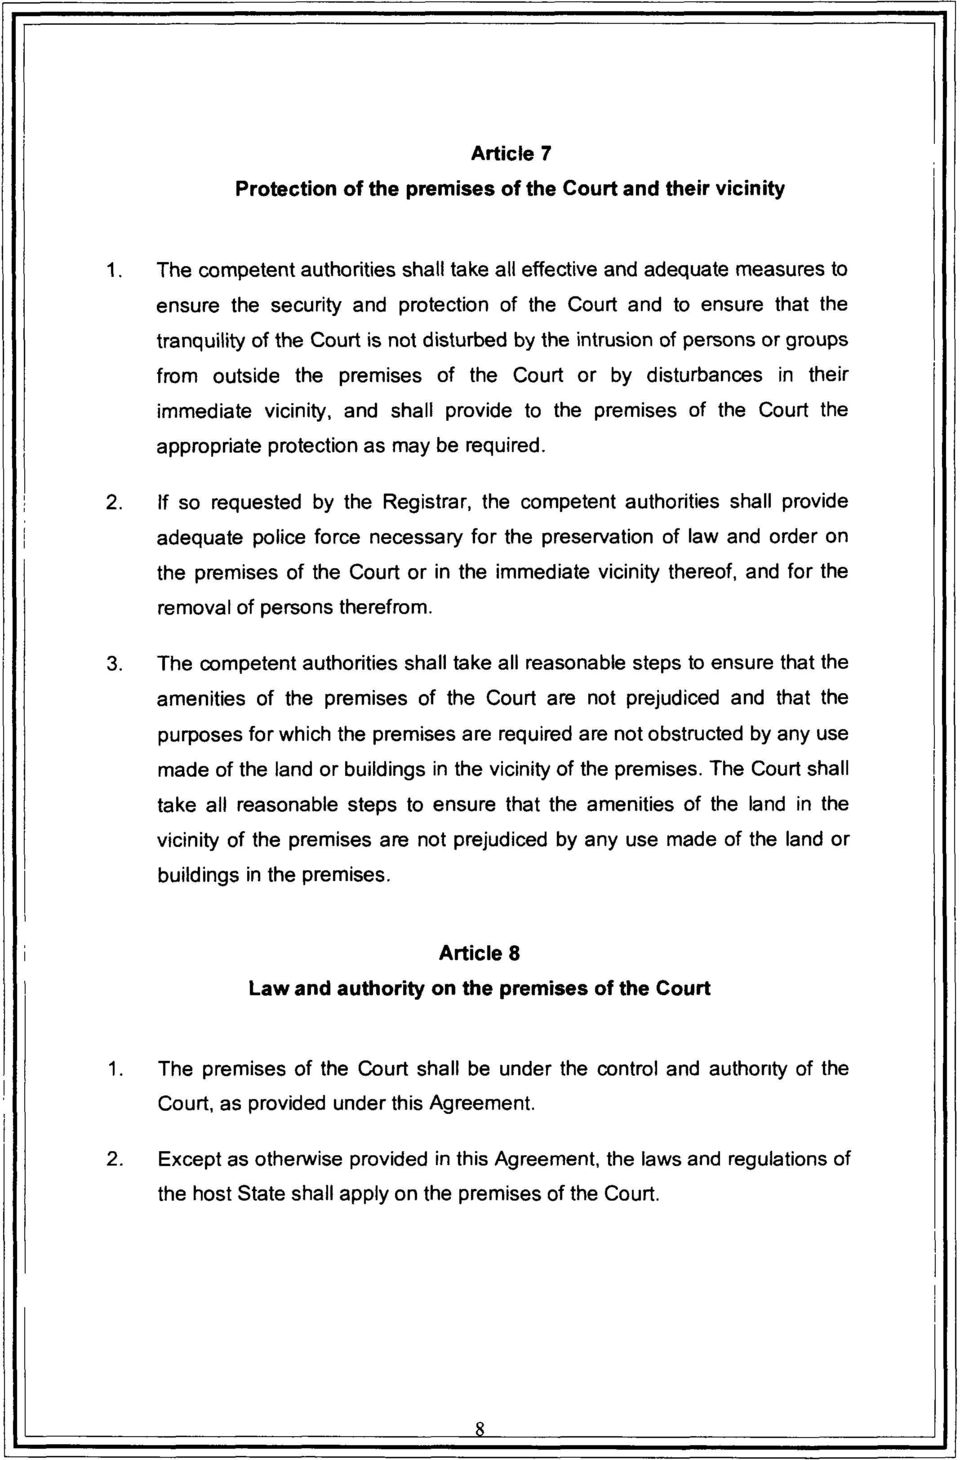 intrusion of persons or groups from outside the premises of the Court or by disturbances in their immediate vicinity, and shall provide to the premises of the Court the appropriate protection as may